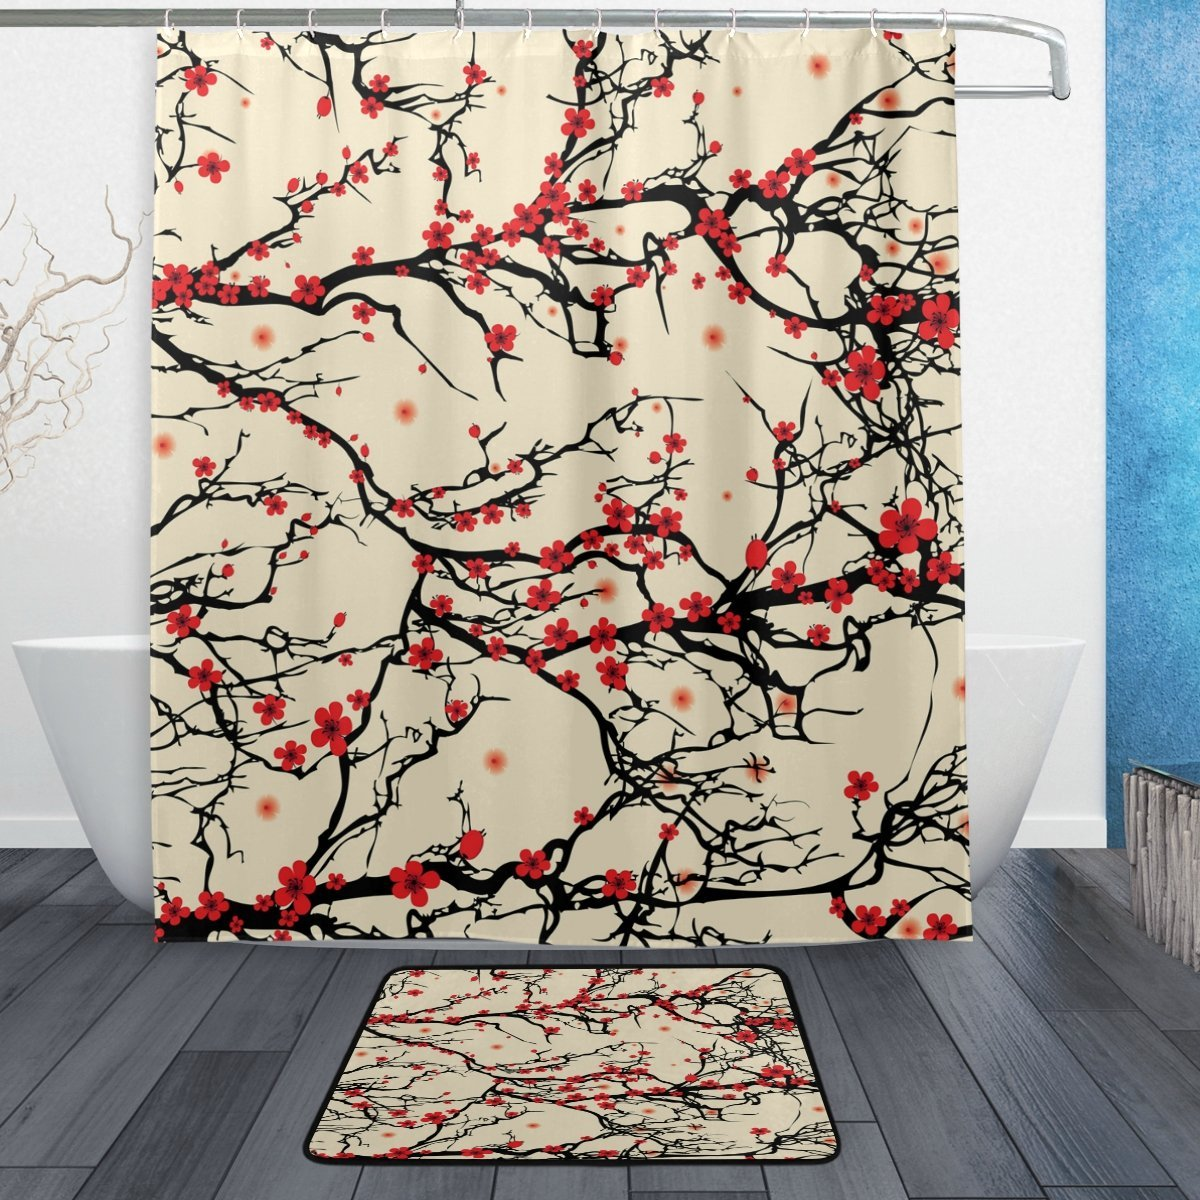 Vintage Asian Style Flower Tree Waterproof Polyester Fabric Shower Curtain with Hooks Doormat Bath Floor Mat Bathroom Home Decor